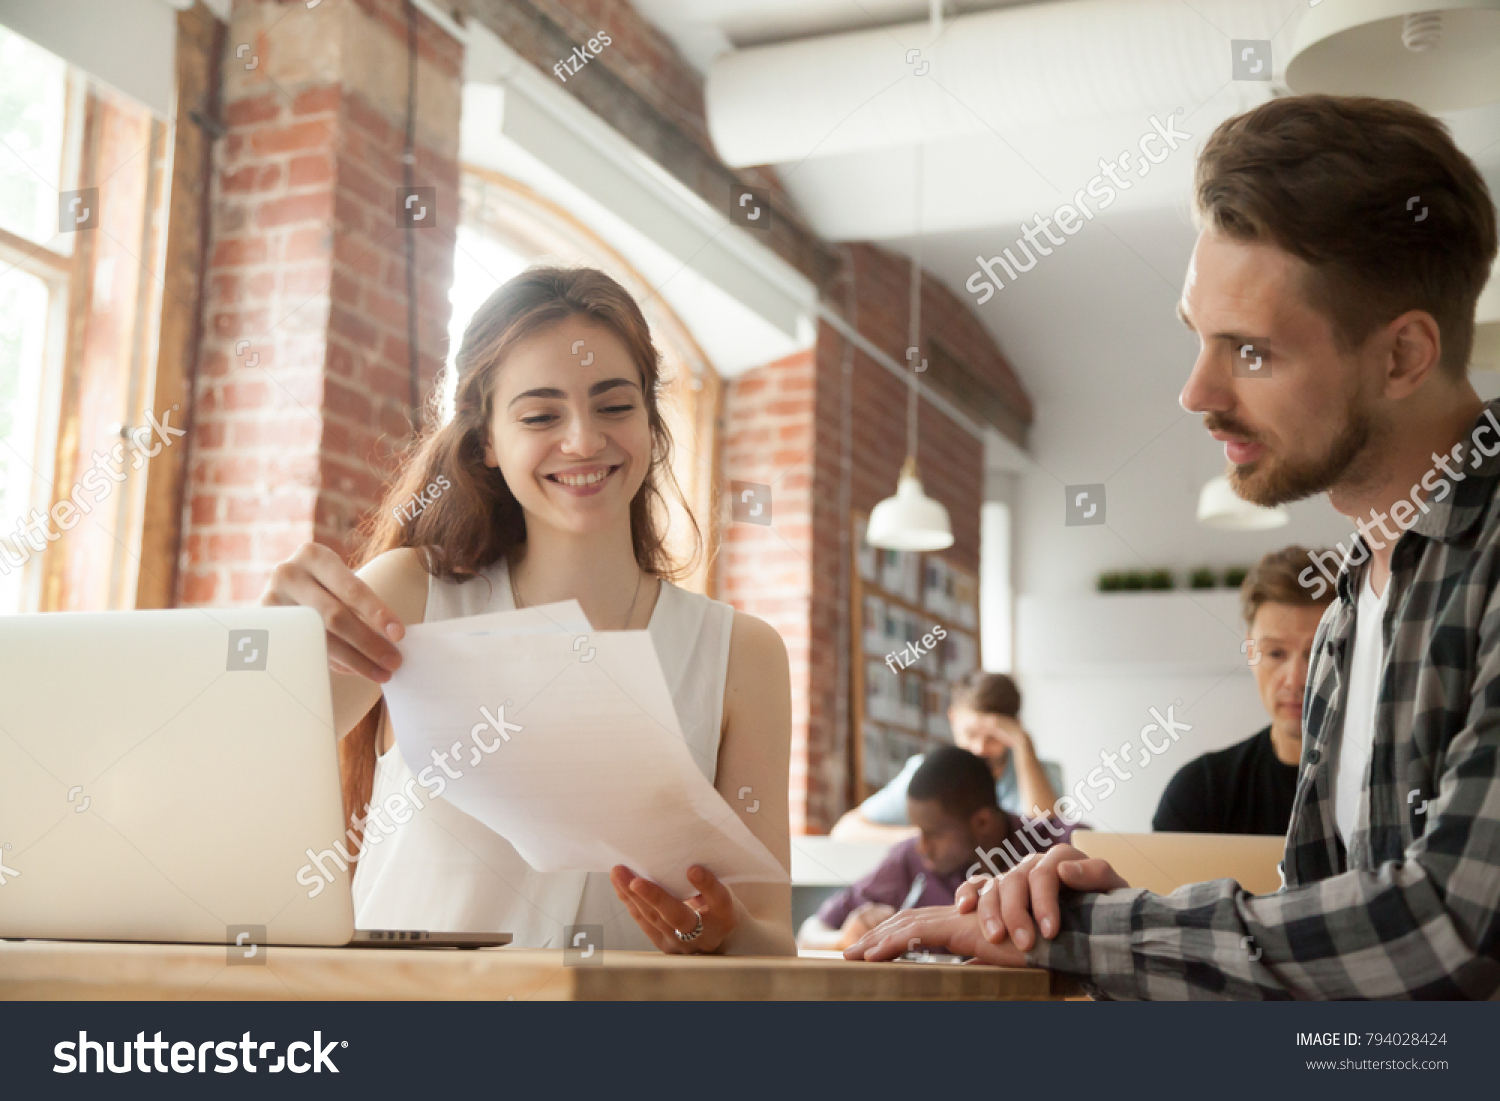 Businesswoman discussing business documents at meeting with client customer in shared office, smiling woman employee helping mentoring young man intern explaining corporate paperwork in co-working #794028424